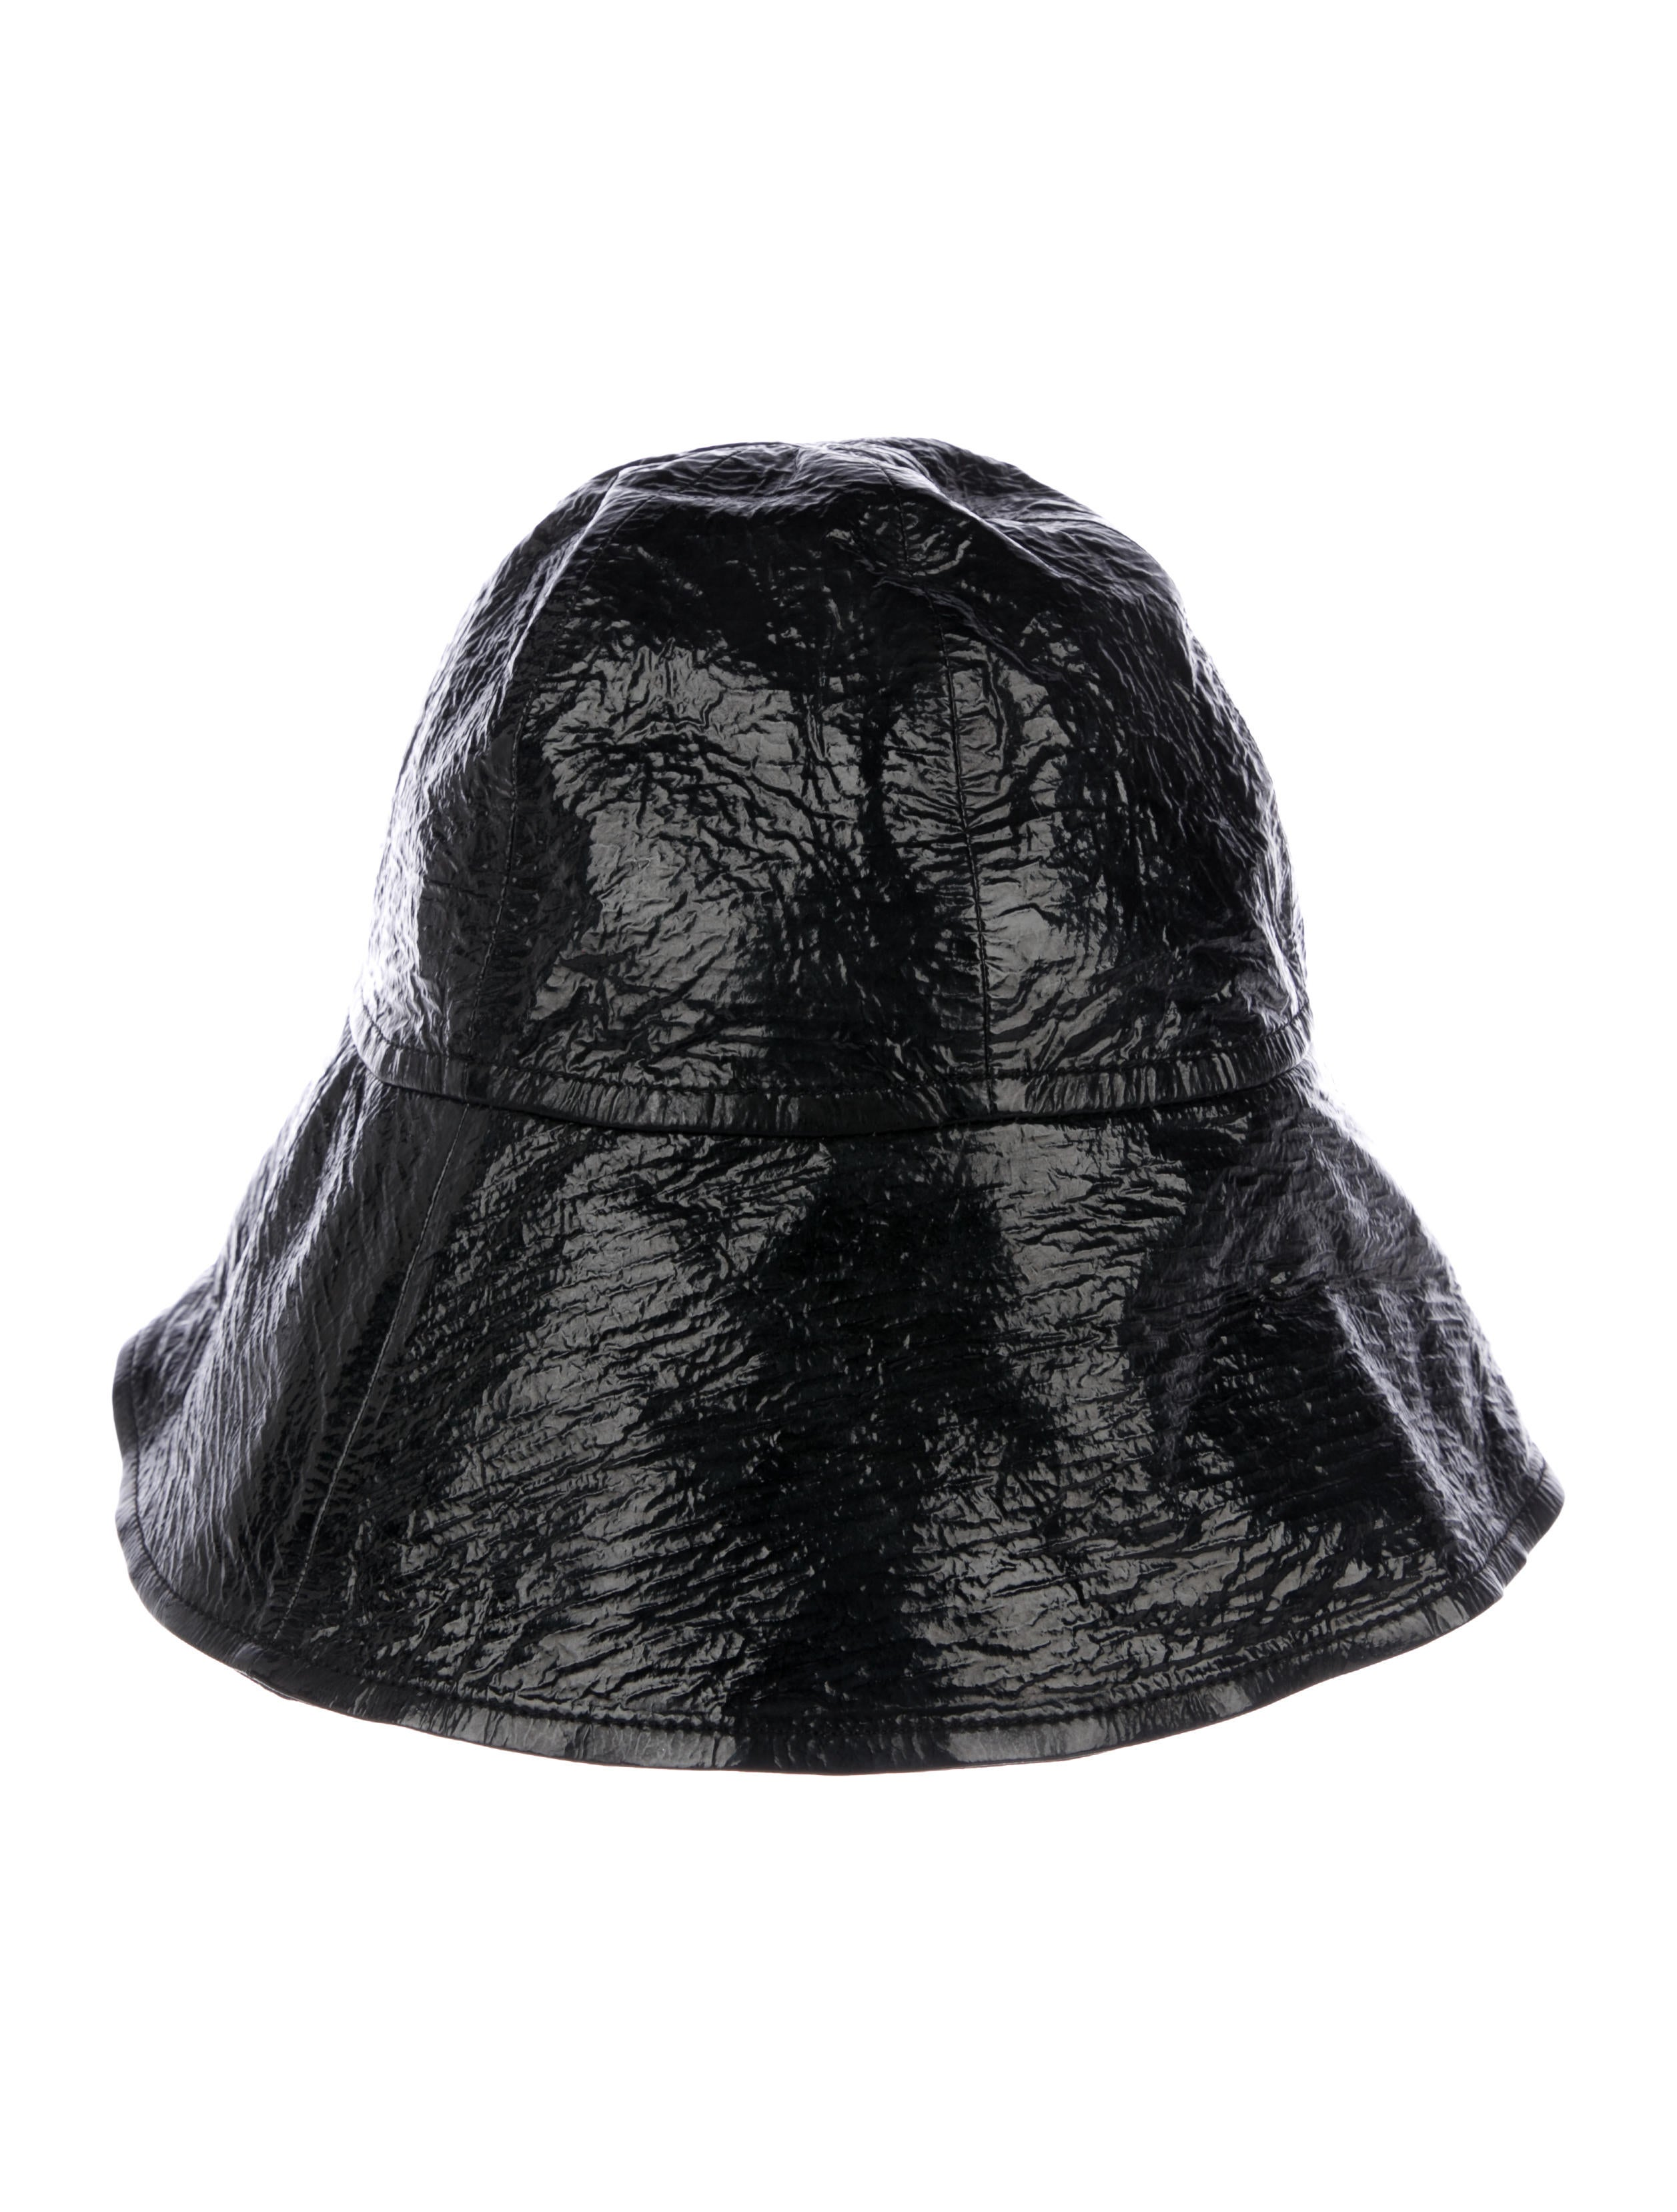 Lanvin Patent Leather Bucket Hat w  Tags - Accessories - LAN91504 ... dcec64758bc